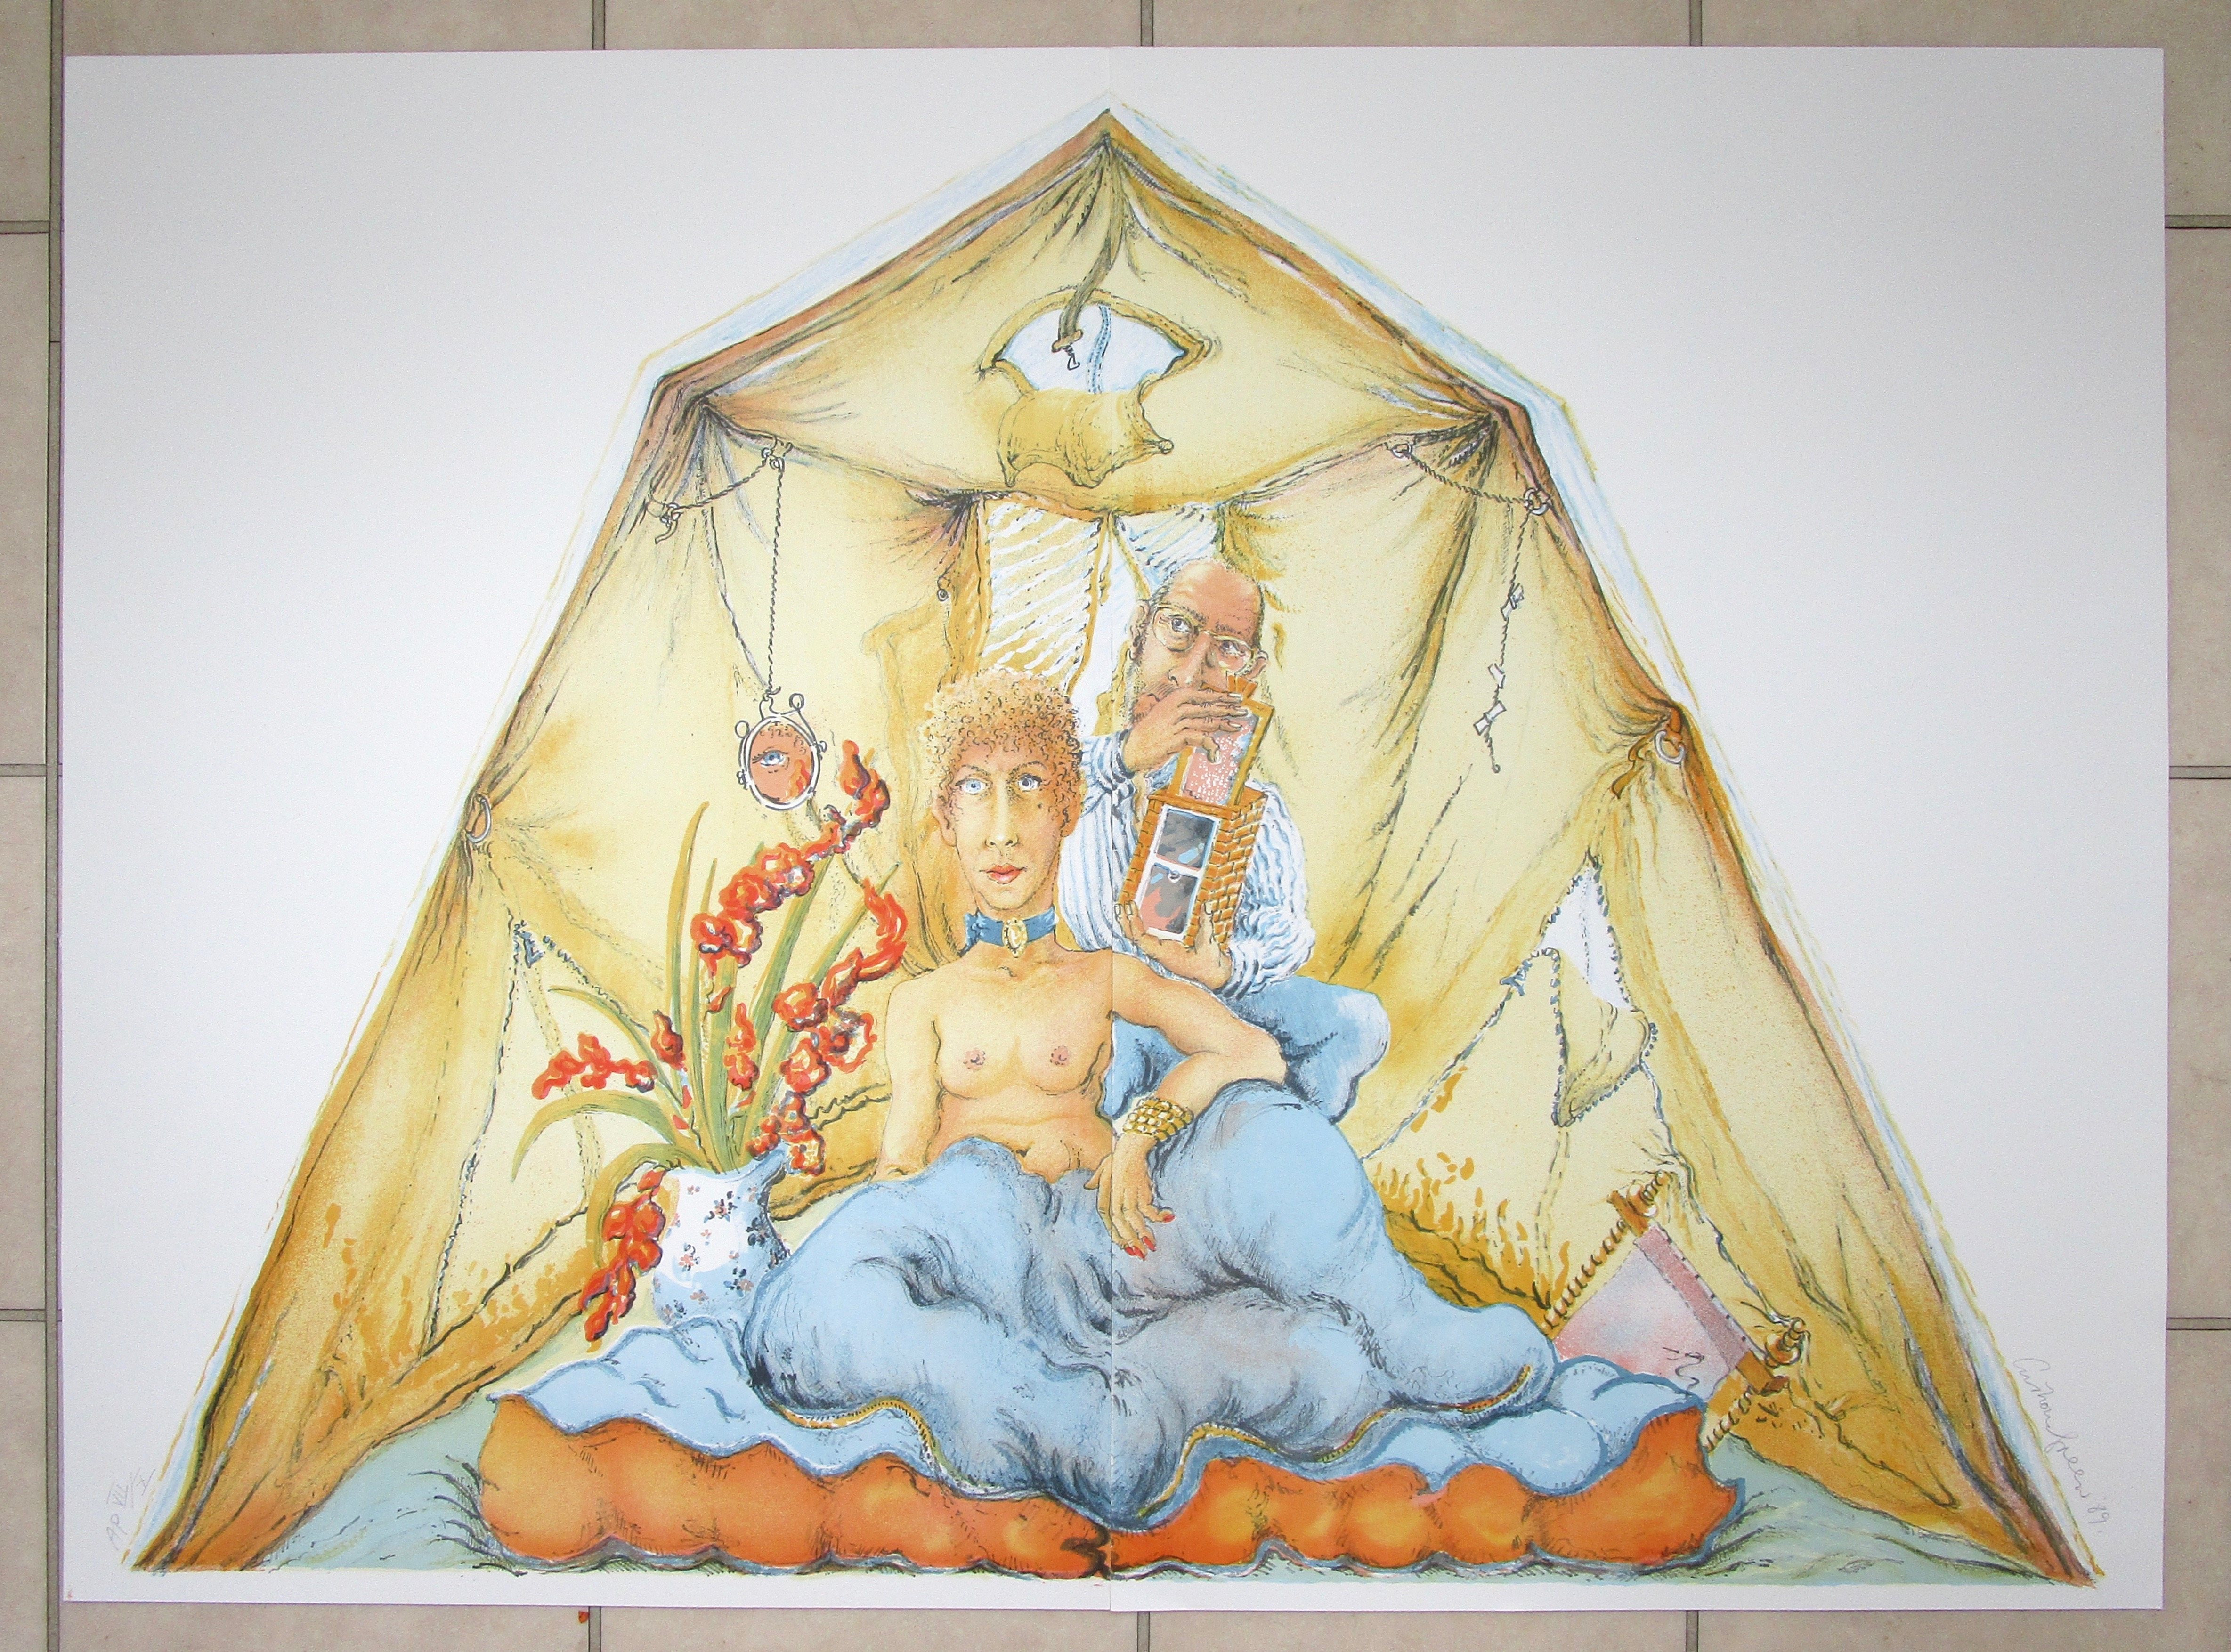 Lot 9 - ANTHONY GREEN RA [b. 1939] Mary's Box and Anthony's Tent, 1988.diptych lithograph on two sheets,